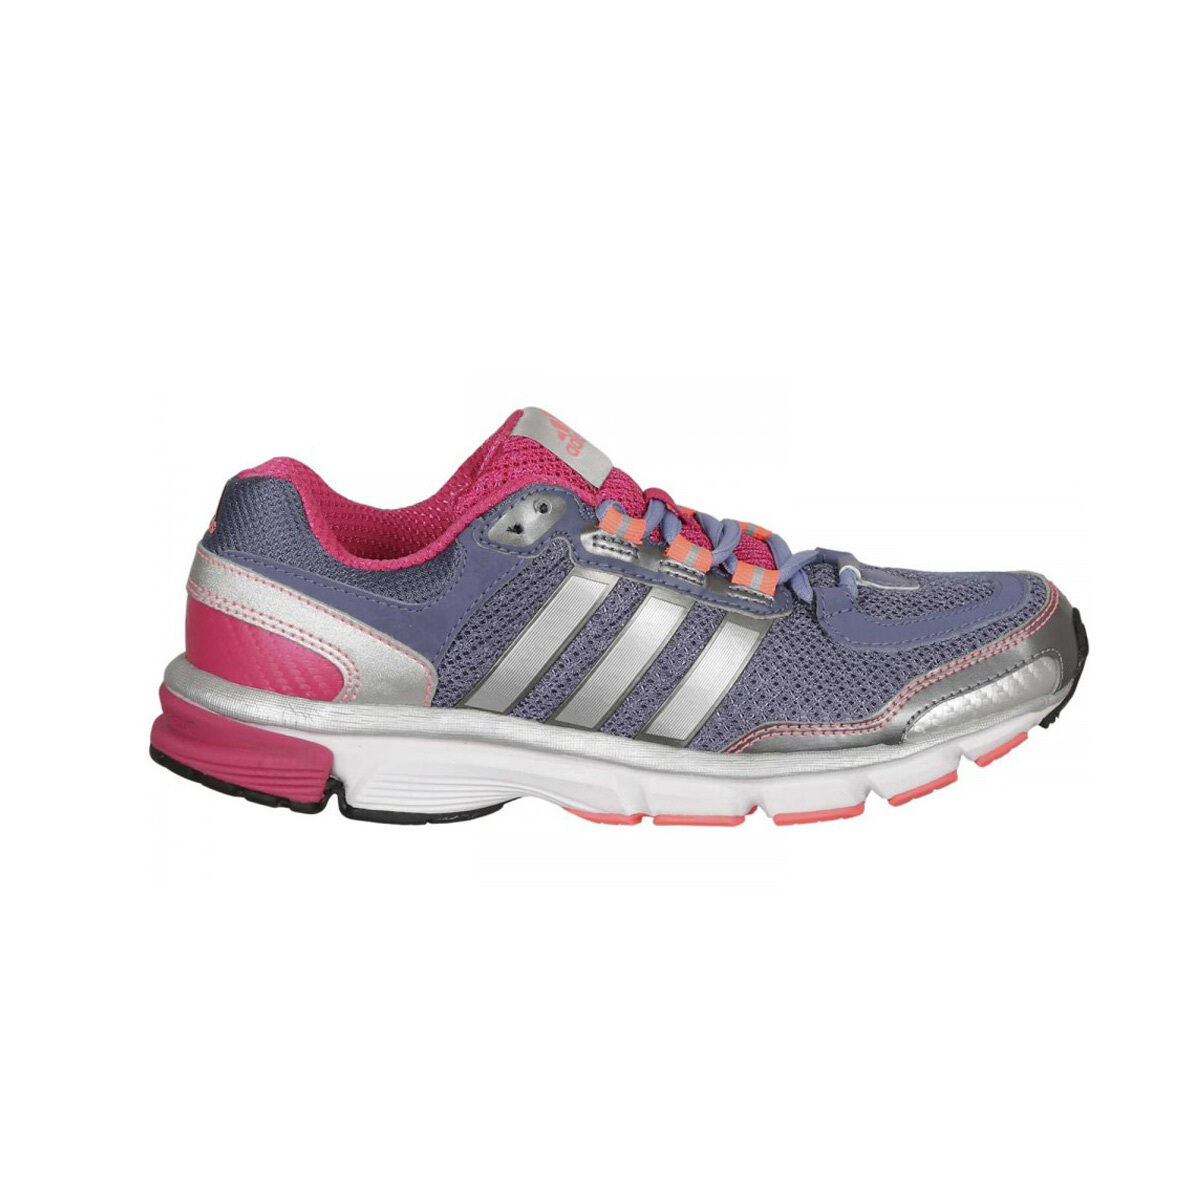 Adidas Exerta 5 Femmes Textile Violet Running Trainers G96957 UK Tailles 3.5 - 9